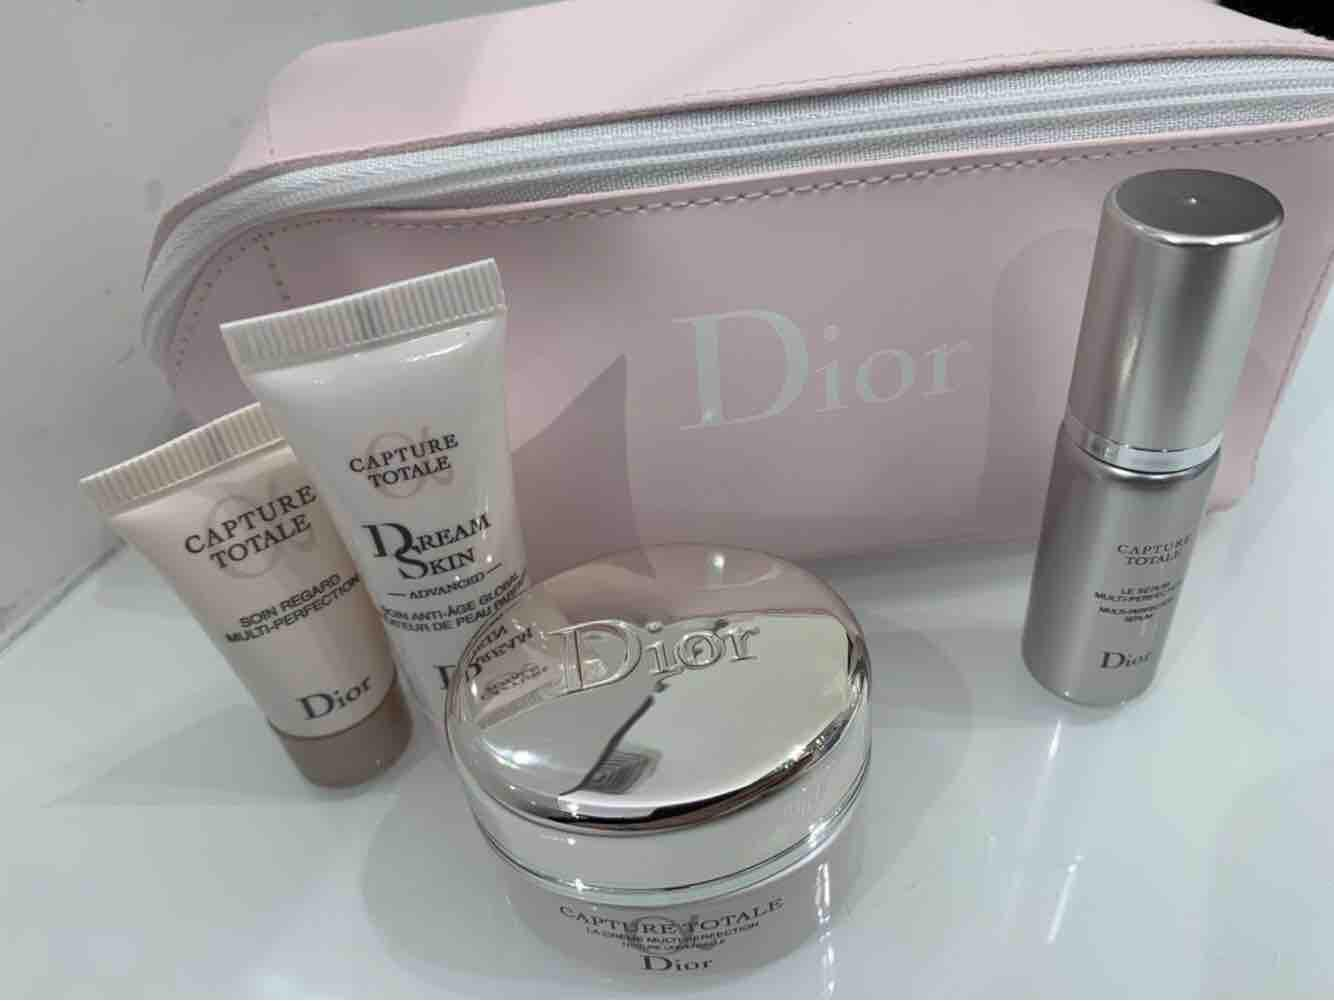 Set dưỡng Dior Capture Totale mini